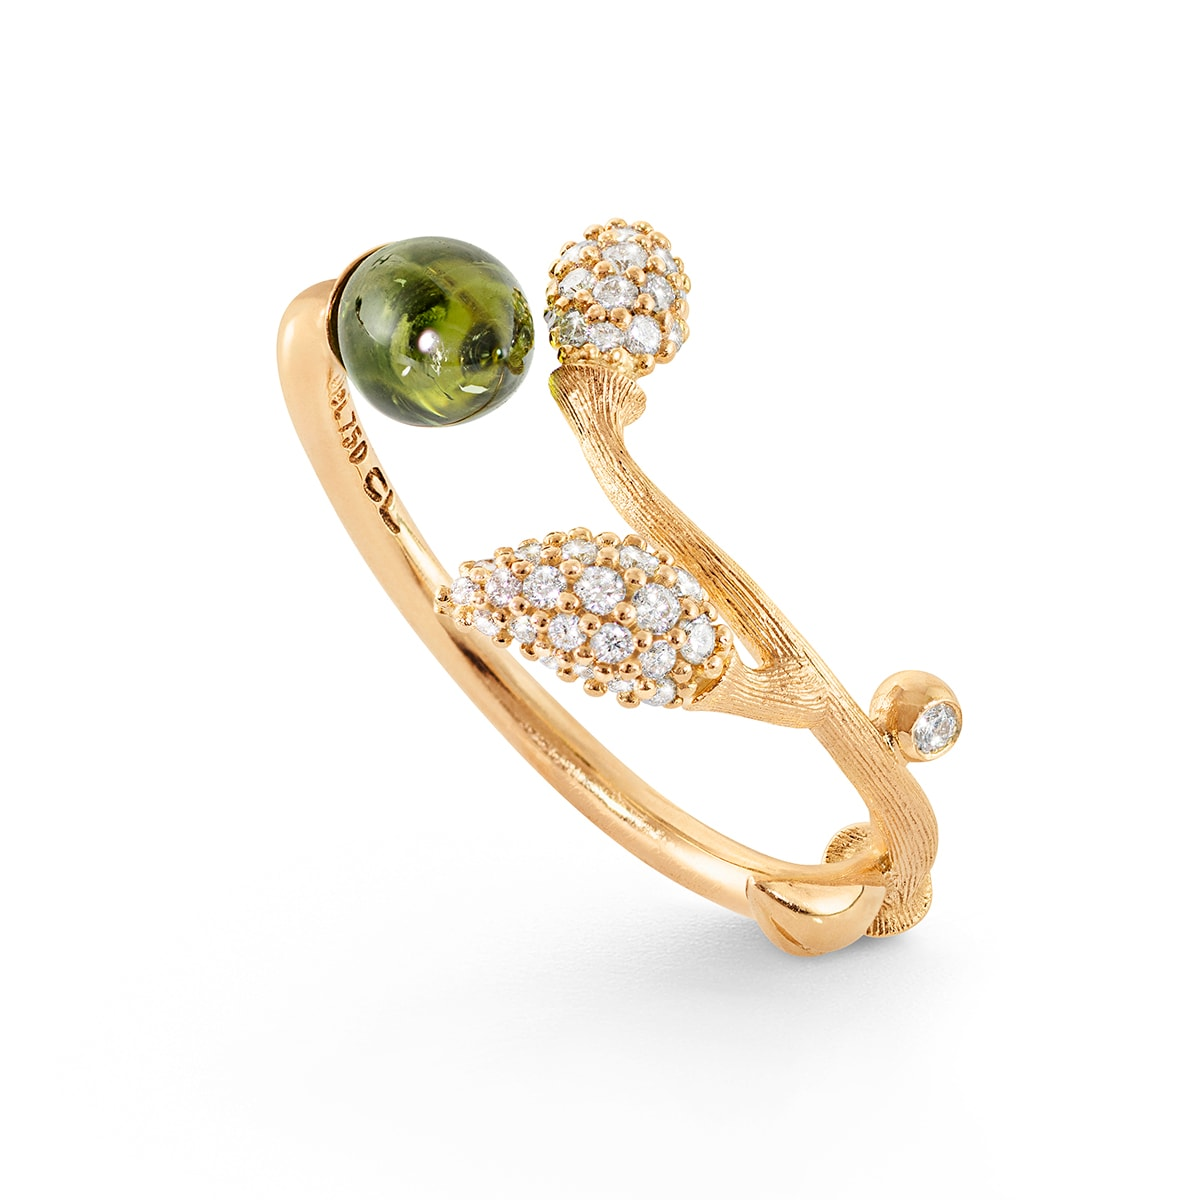 Ole_Lynggaard_A2885-403_Blooming_ring_18K_gold_with_tourmaline_hos_Jarl_Sandin